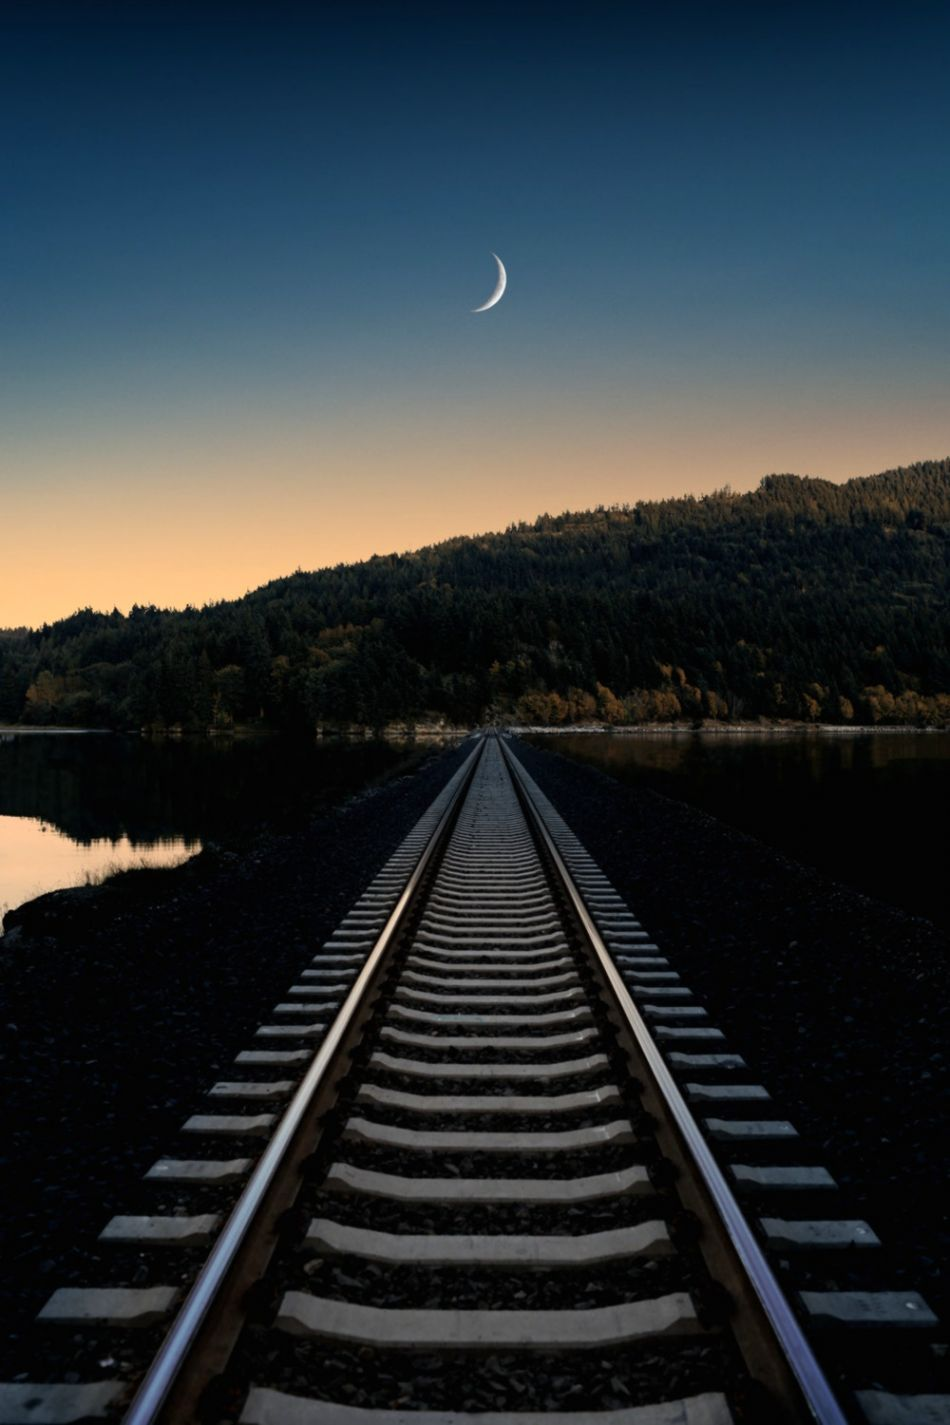 Crescent Moon Pictures HQ Download Free Images on Unsplash